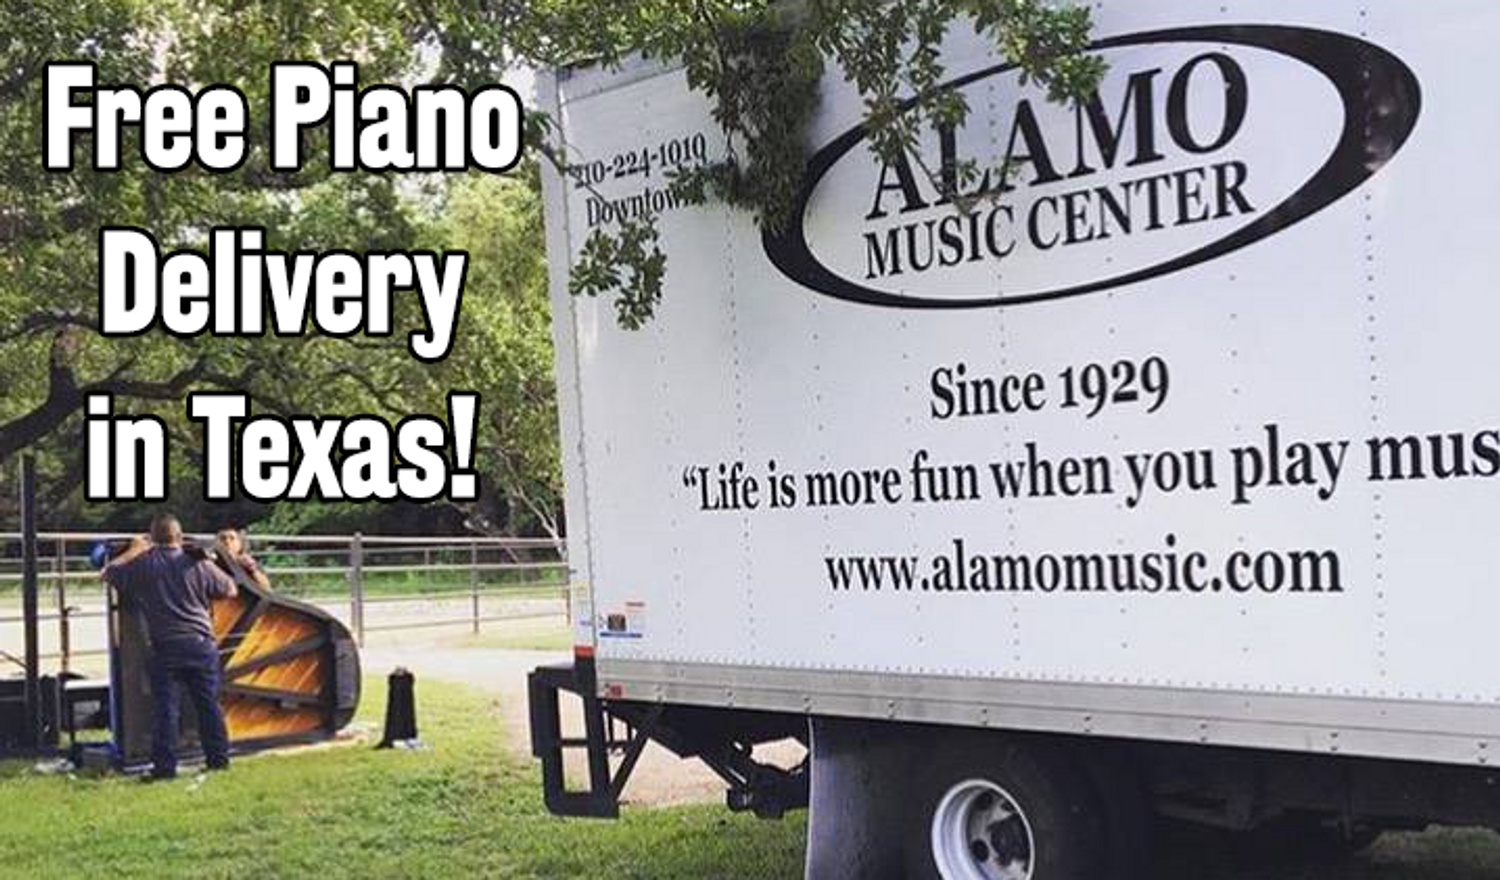 Free Piano Delivery & Tuning in Texas | Alamo Music